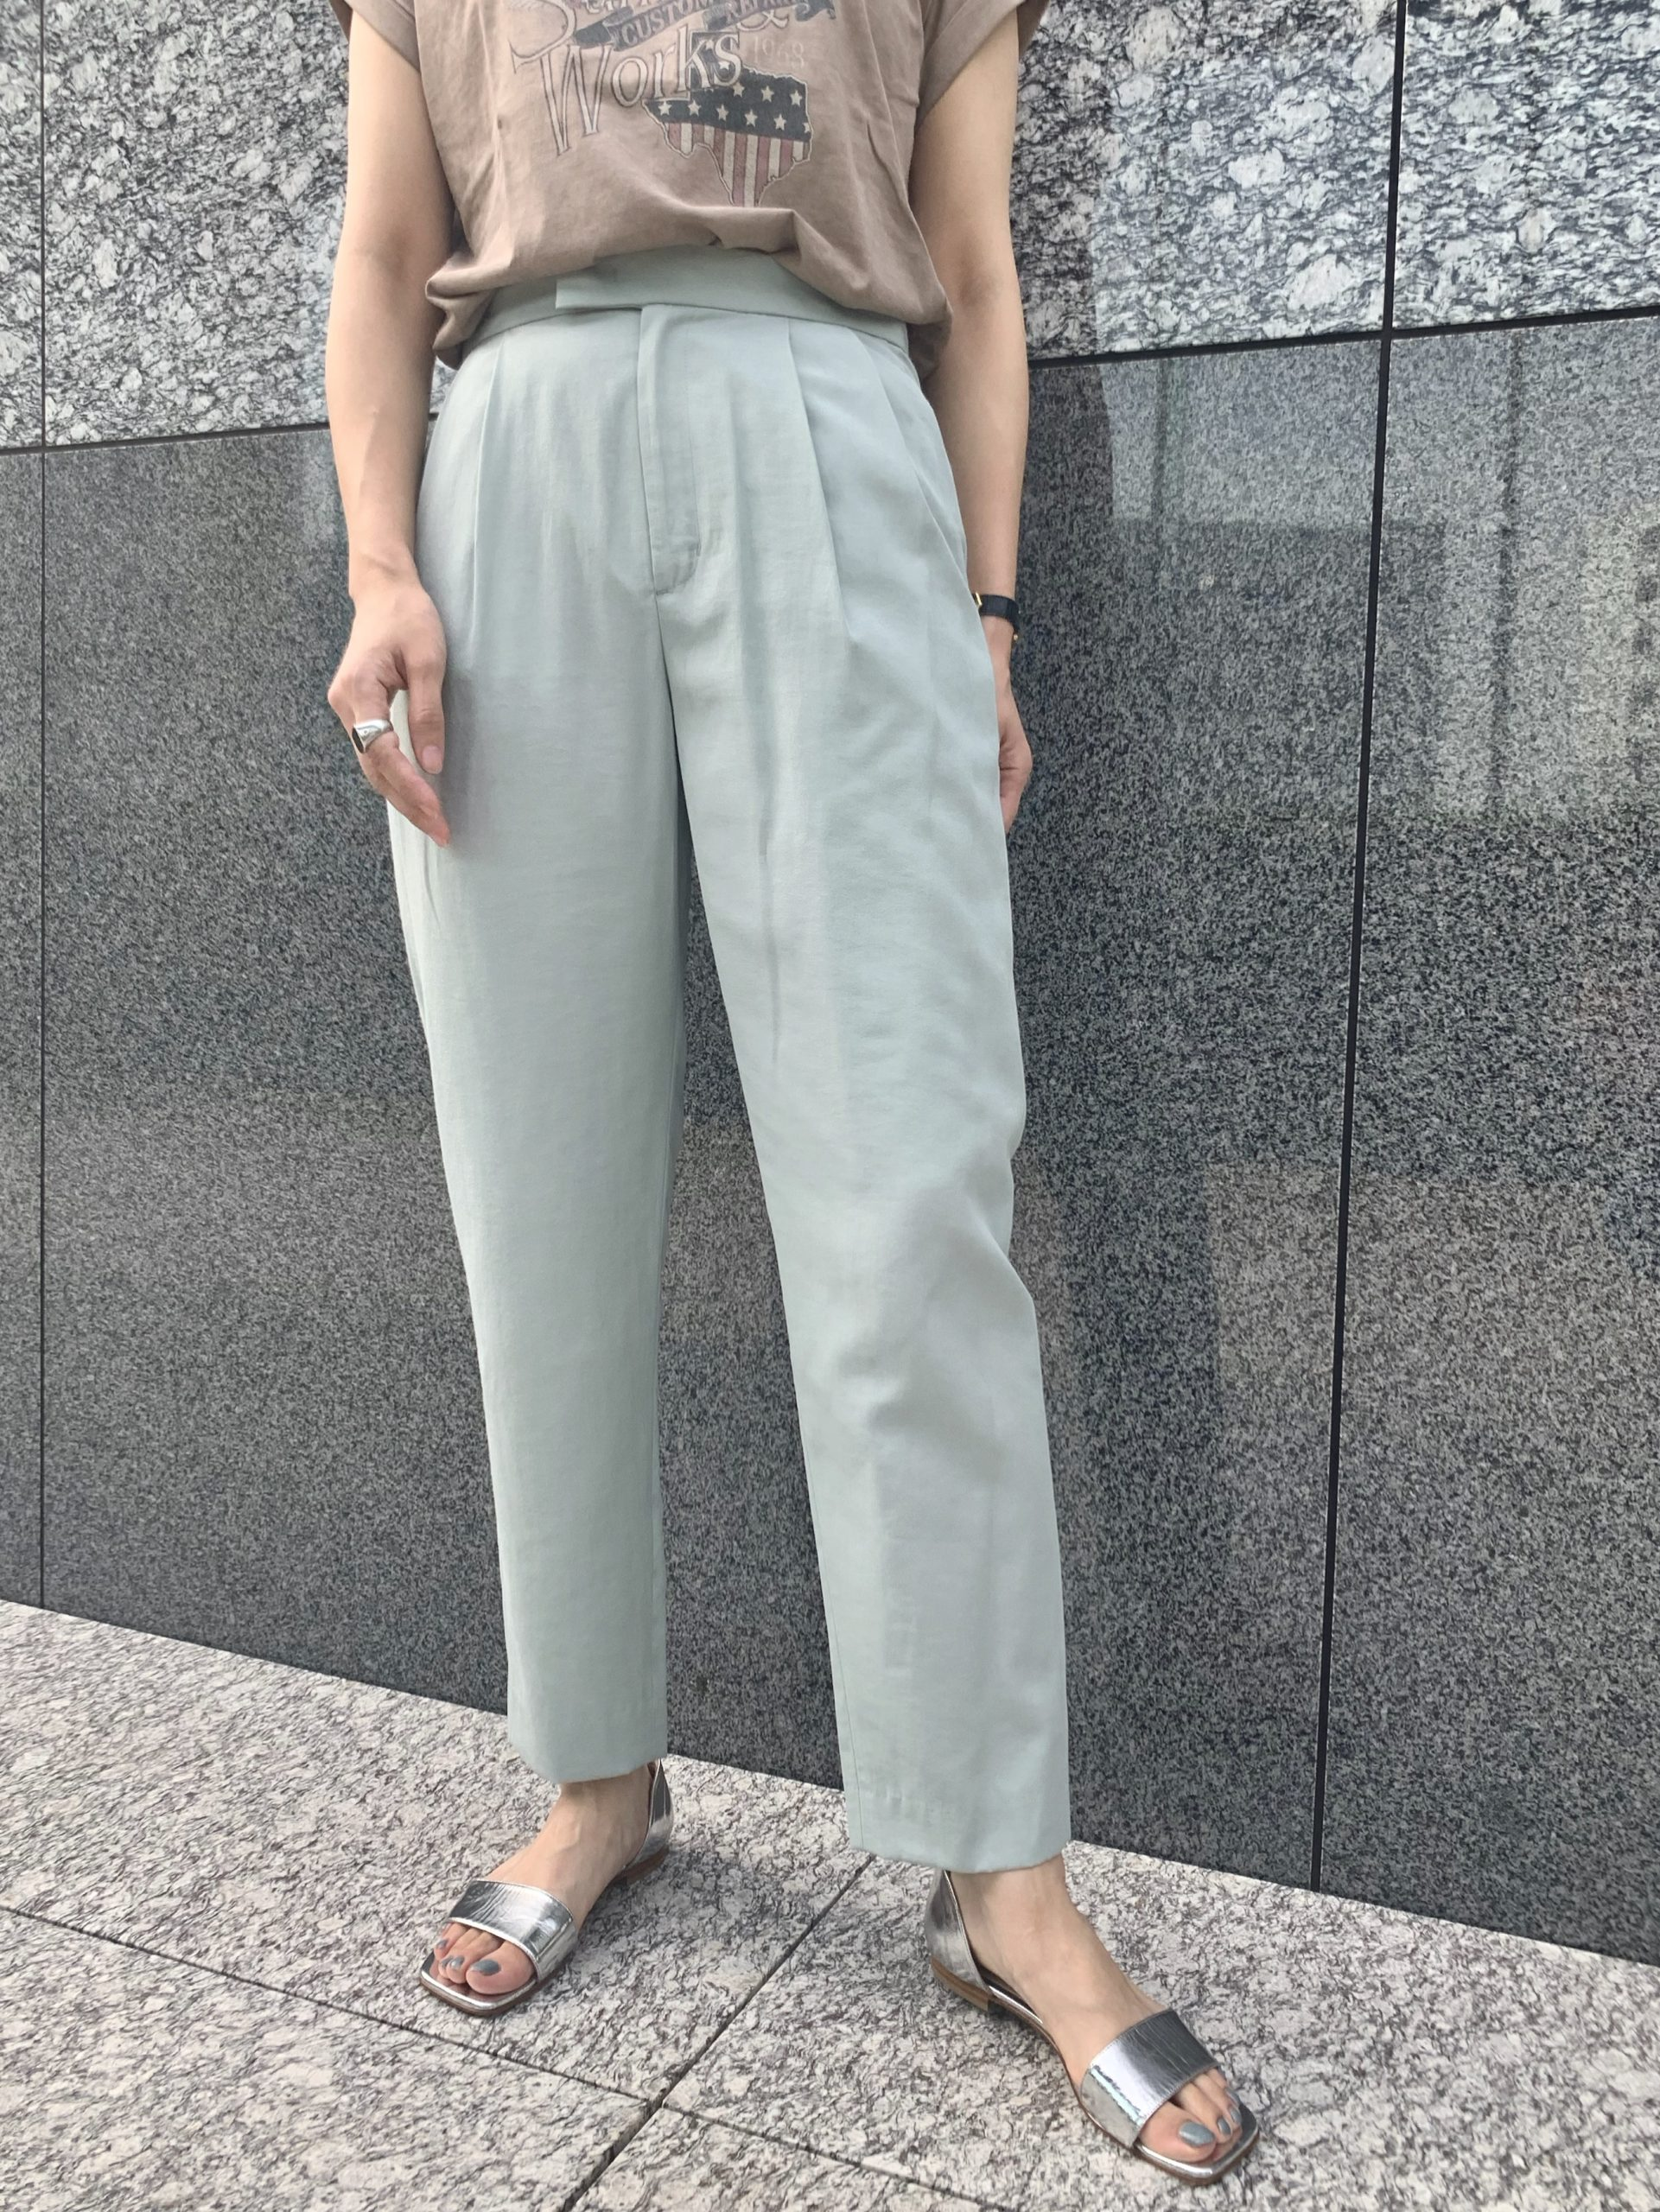 MICA & DEAL tuck tapered パンツ ¥16,000+税